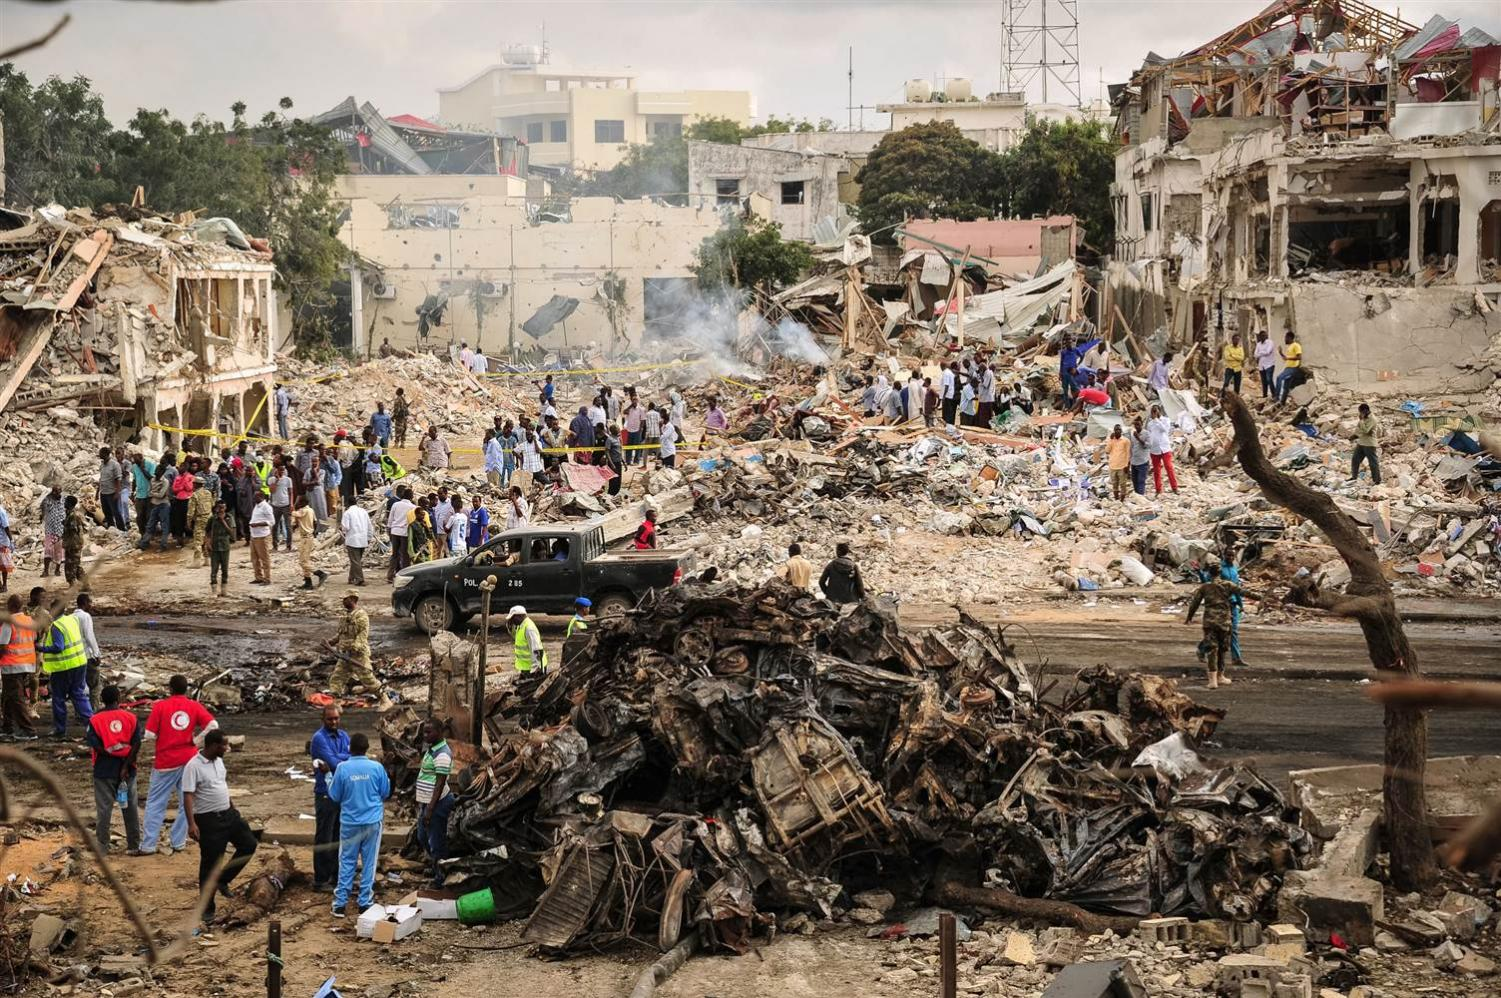 The rummage left after the Somalia bombing.